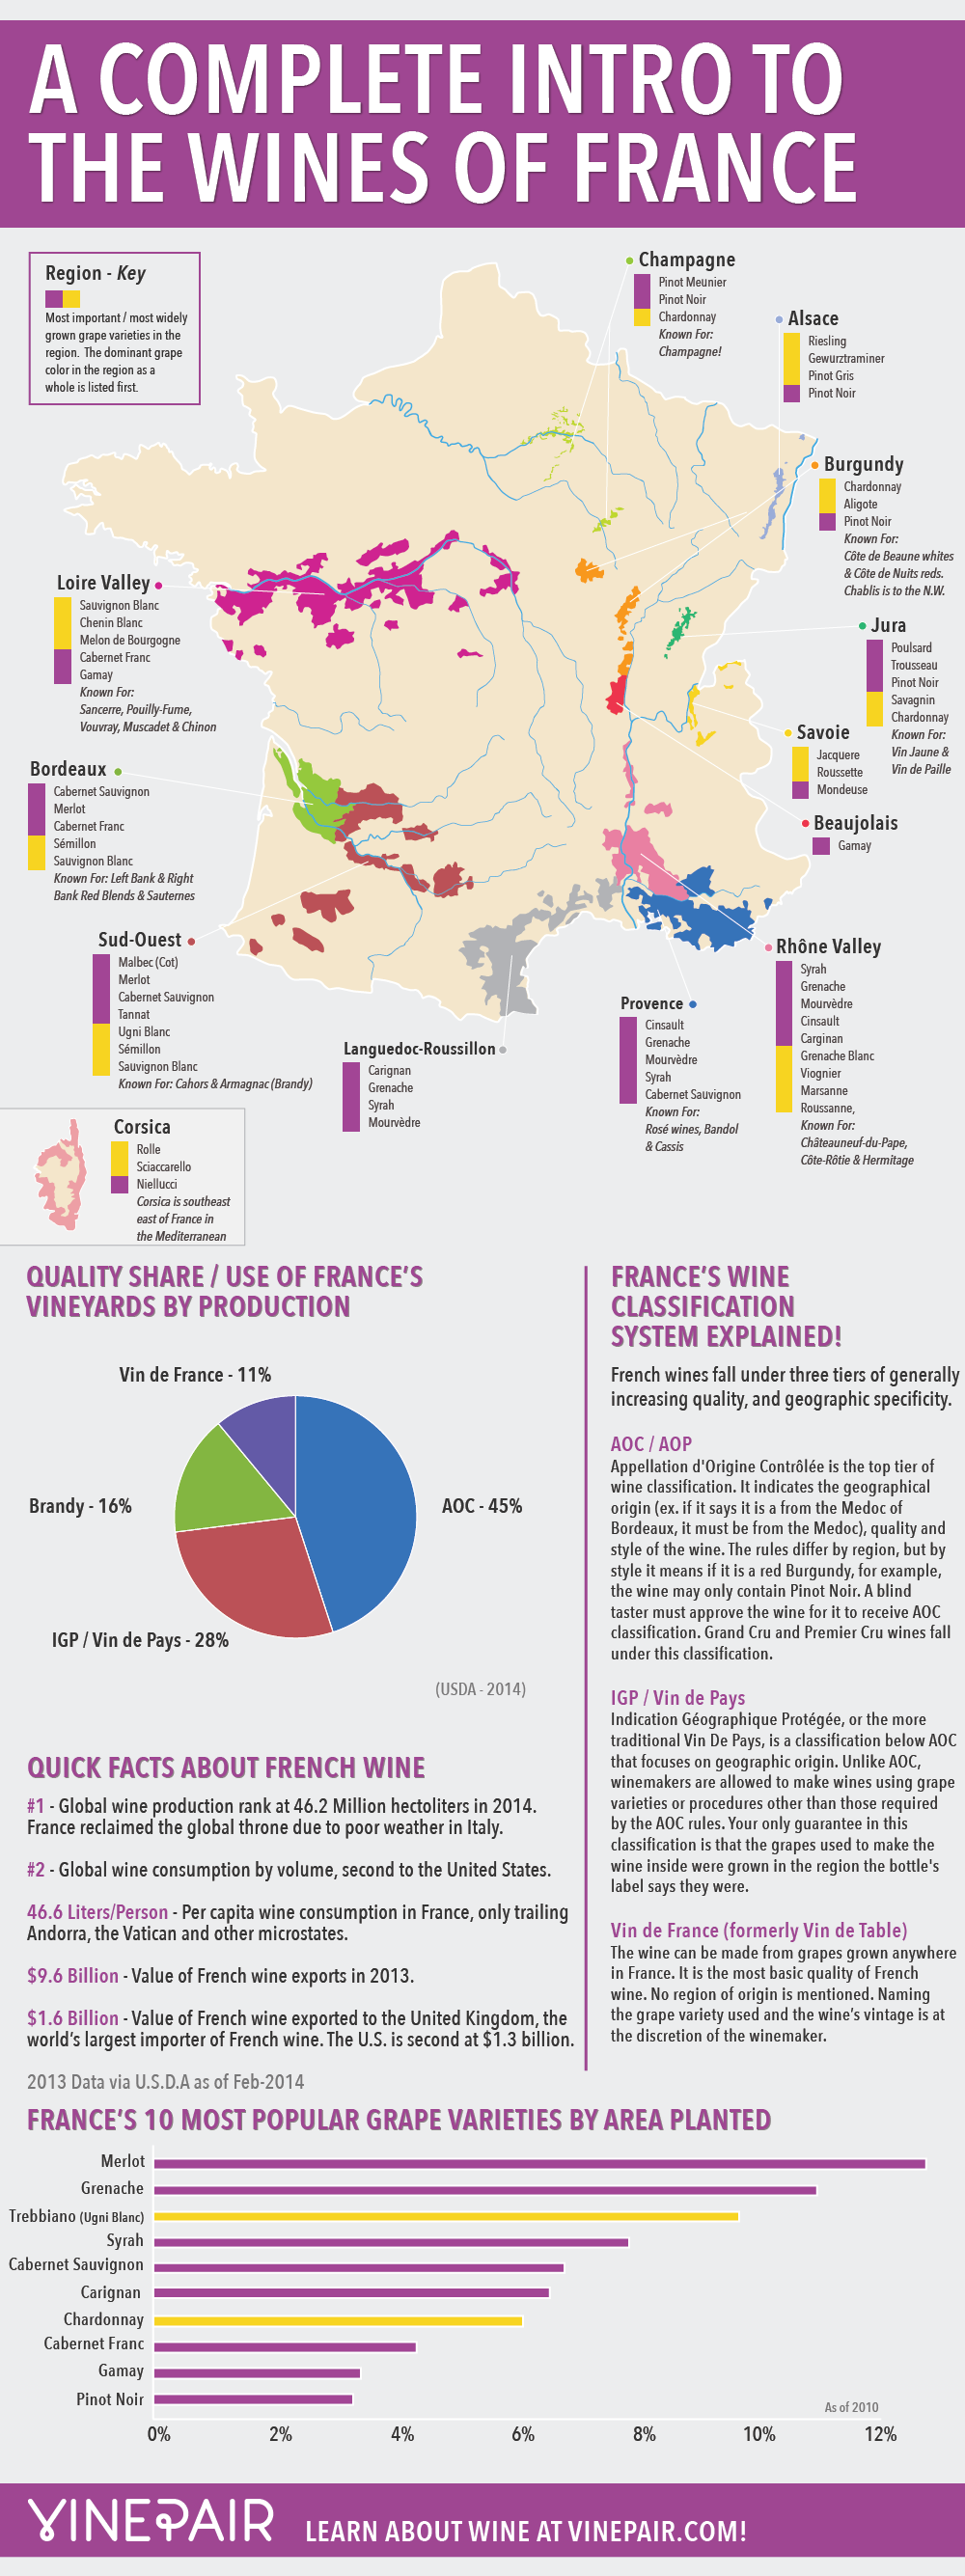 A Complete Intro to the Wines of France by VinePair